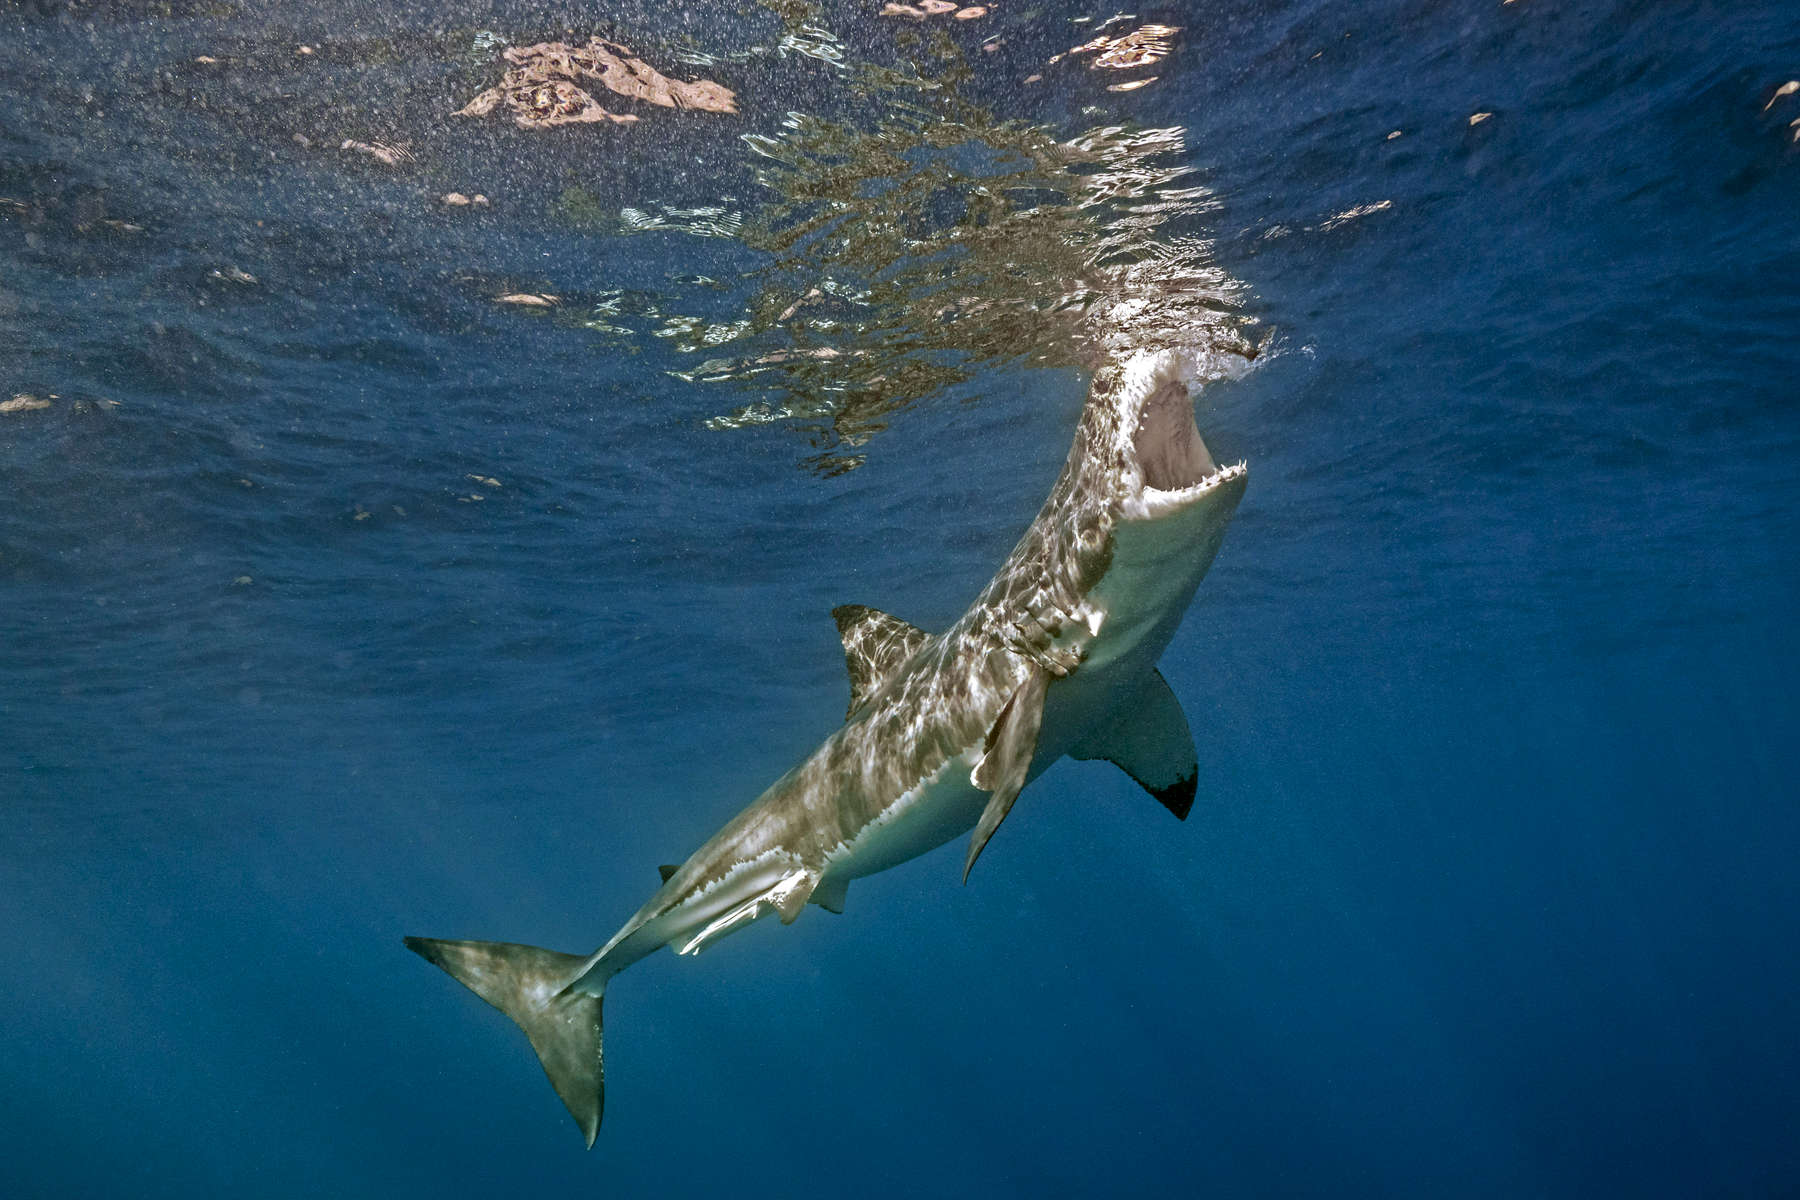 Isla Guadalupe, Mexico - November 12, 2015: A carcharodon carcharias, more commonly and infamously known as a great white shark, tries to take a bite out of some tuna bait hanging along the surface waters off the isolated volcanic Mexican Island of Isla Guadalupe. The island, long a destination for fur hunters and sports fishermen has large population of elephant seals, which in turn attracts a seasonal migration of great white sharks. The presence of a population of sharks is so consistent that in recent years the island has become a mecca for shark diving tourism.(Photograph by Benjamin Lowy for The New York Times)